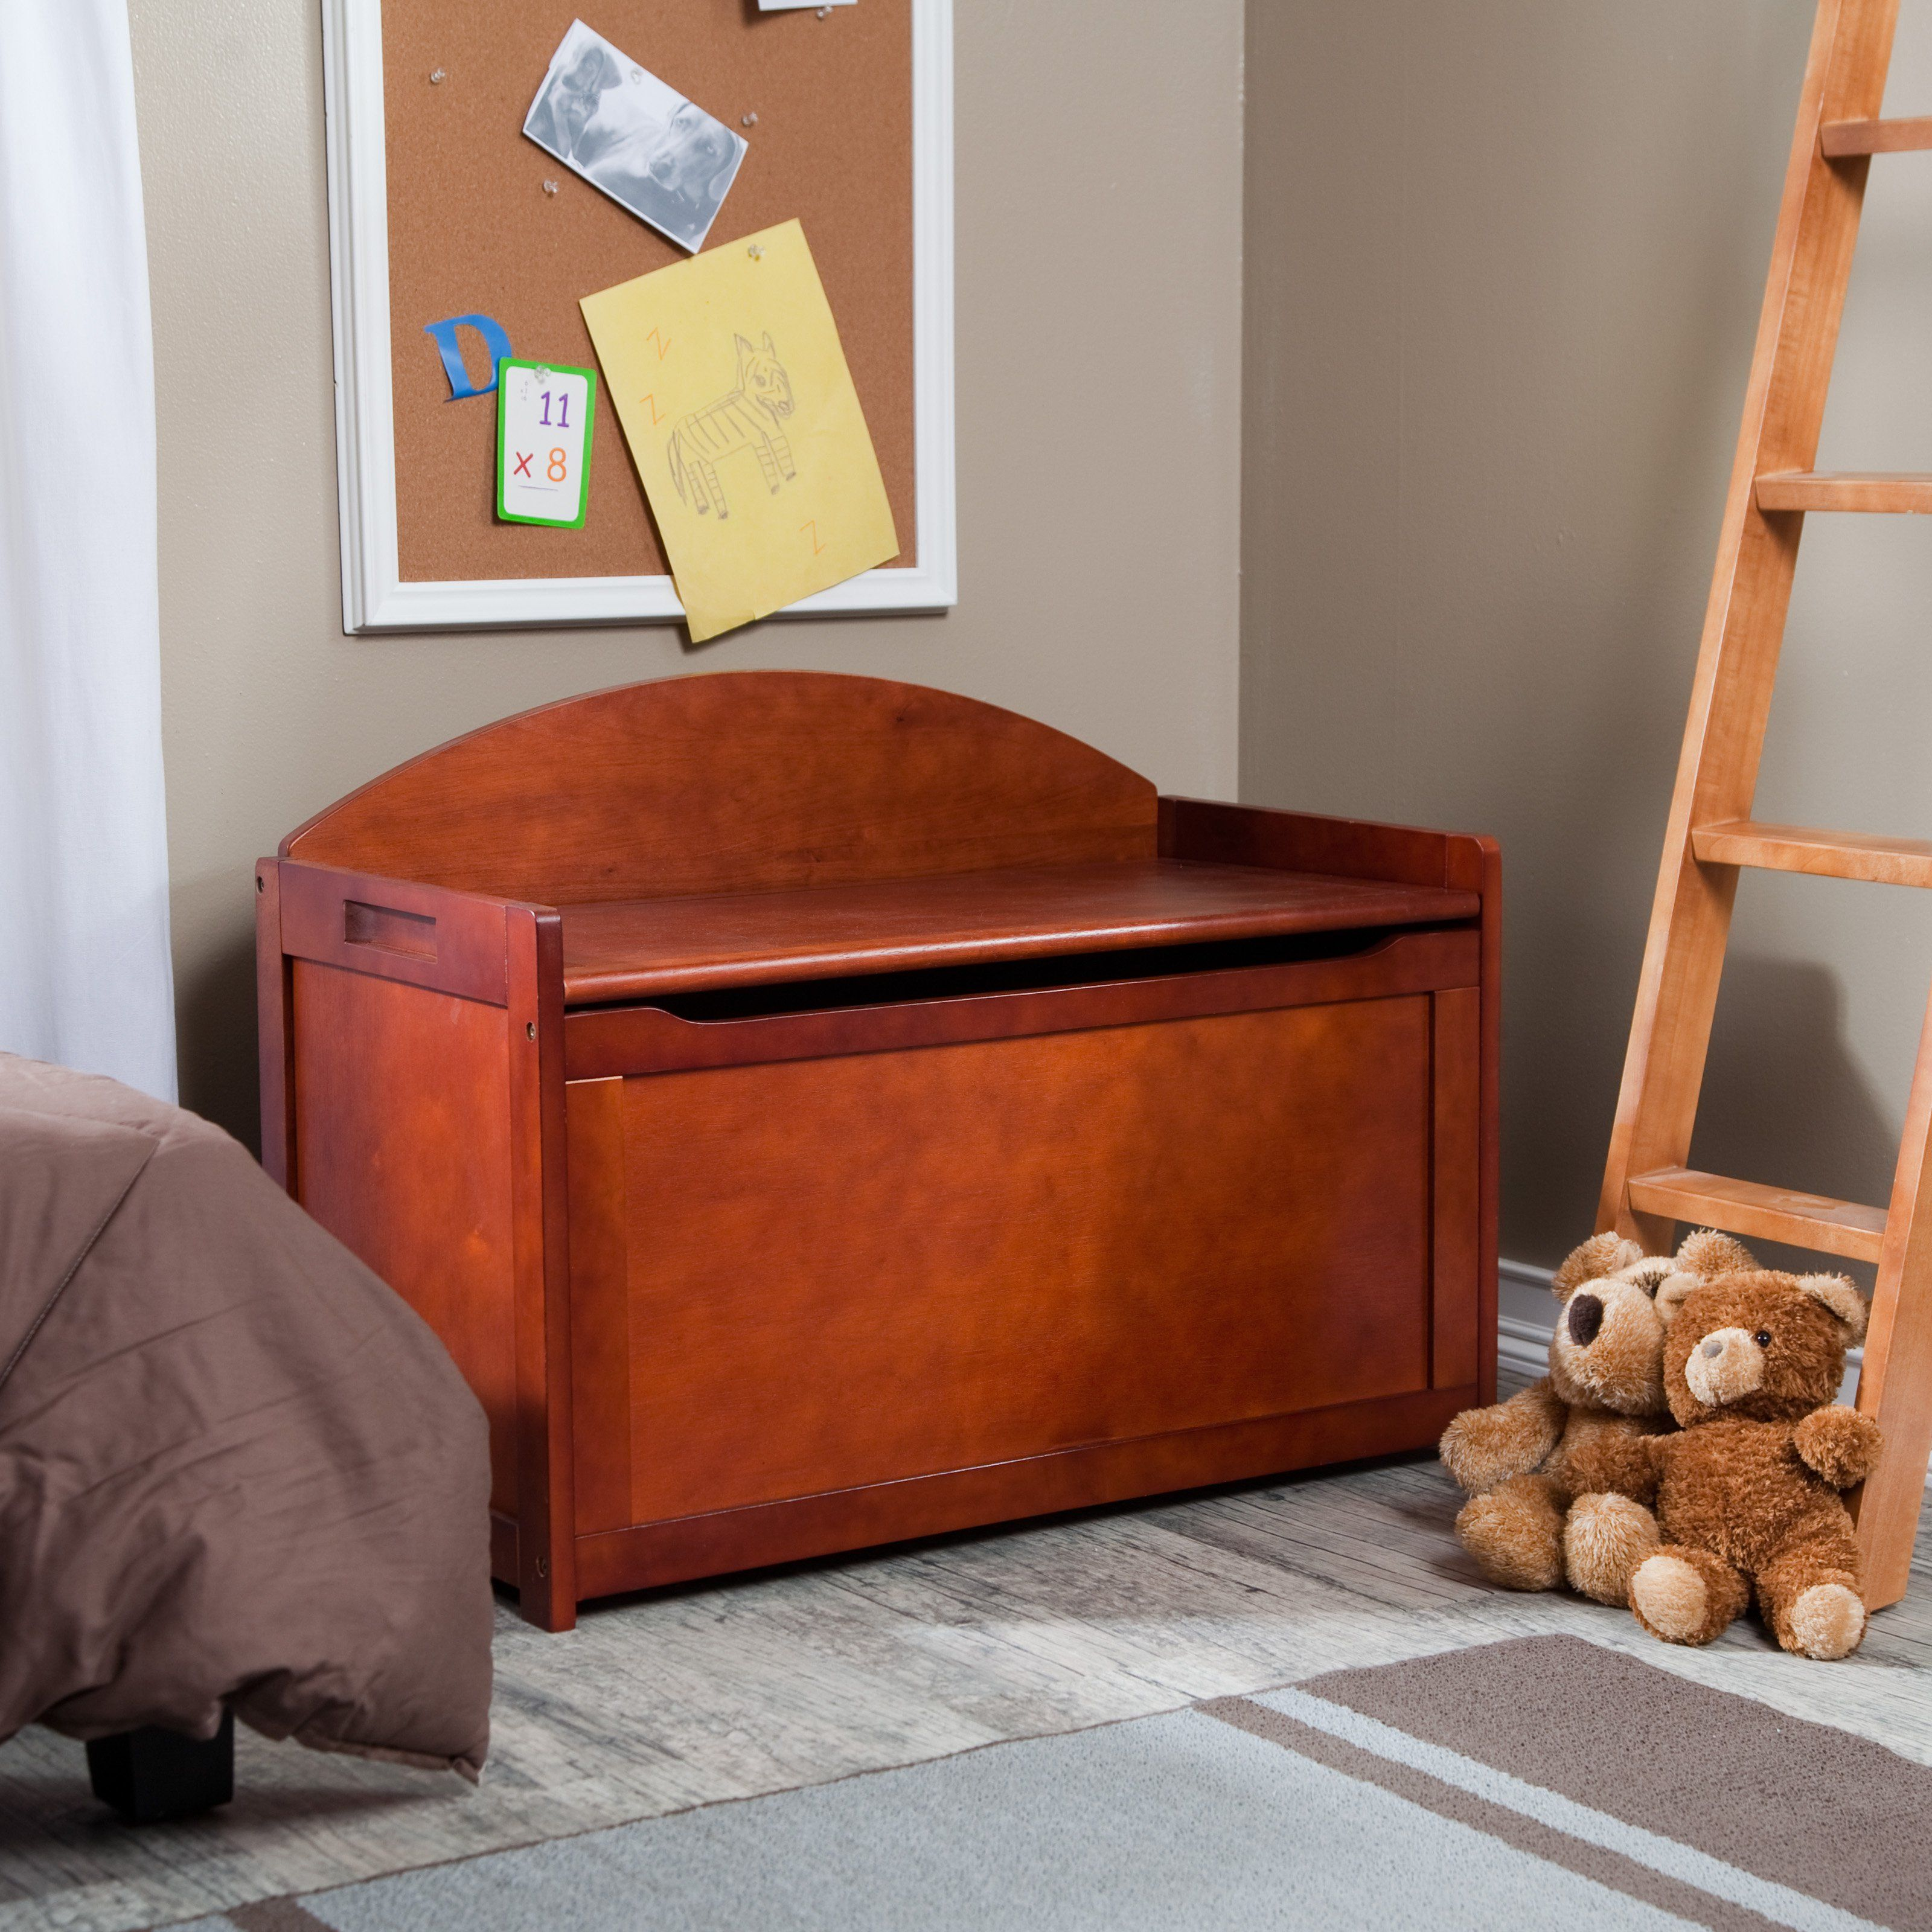 Beechwood Toy Chest By Lipper Toy Chest Kids Furniture Kids